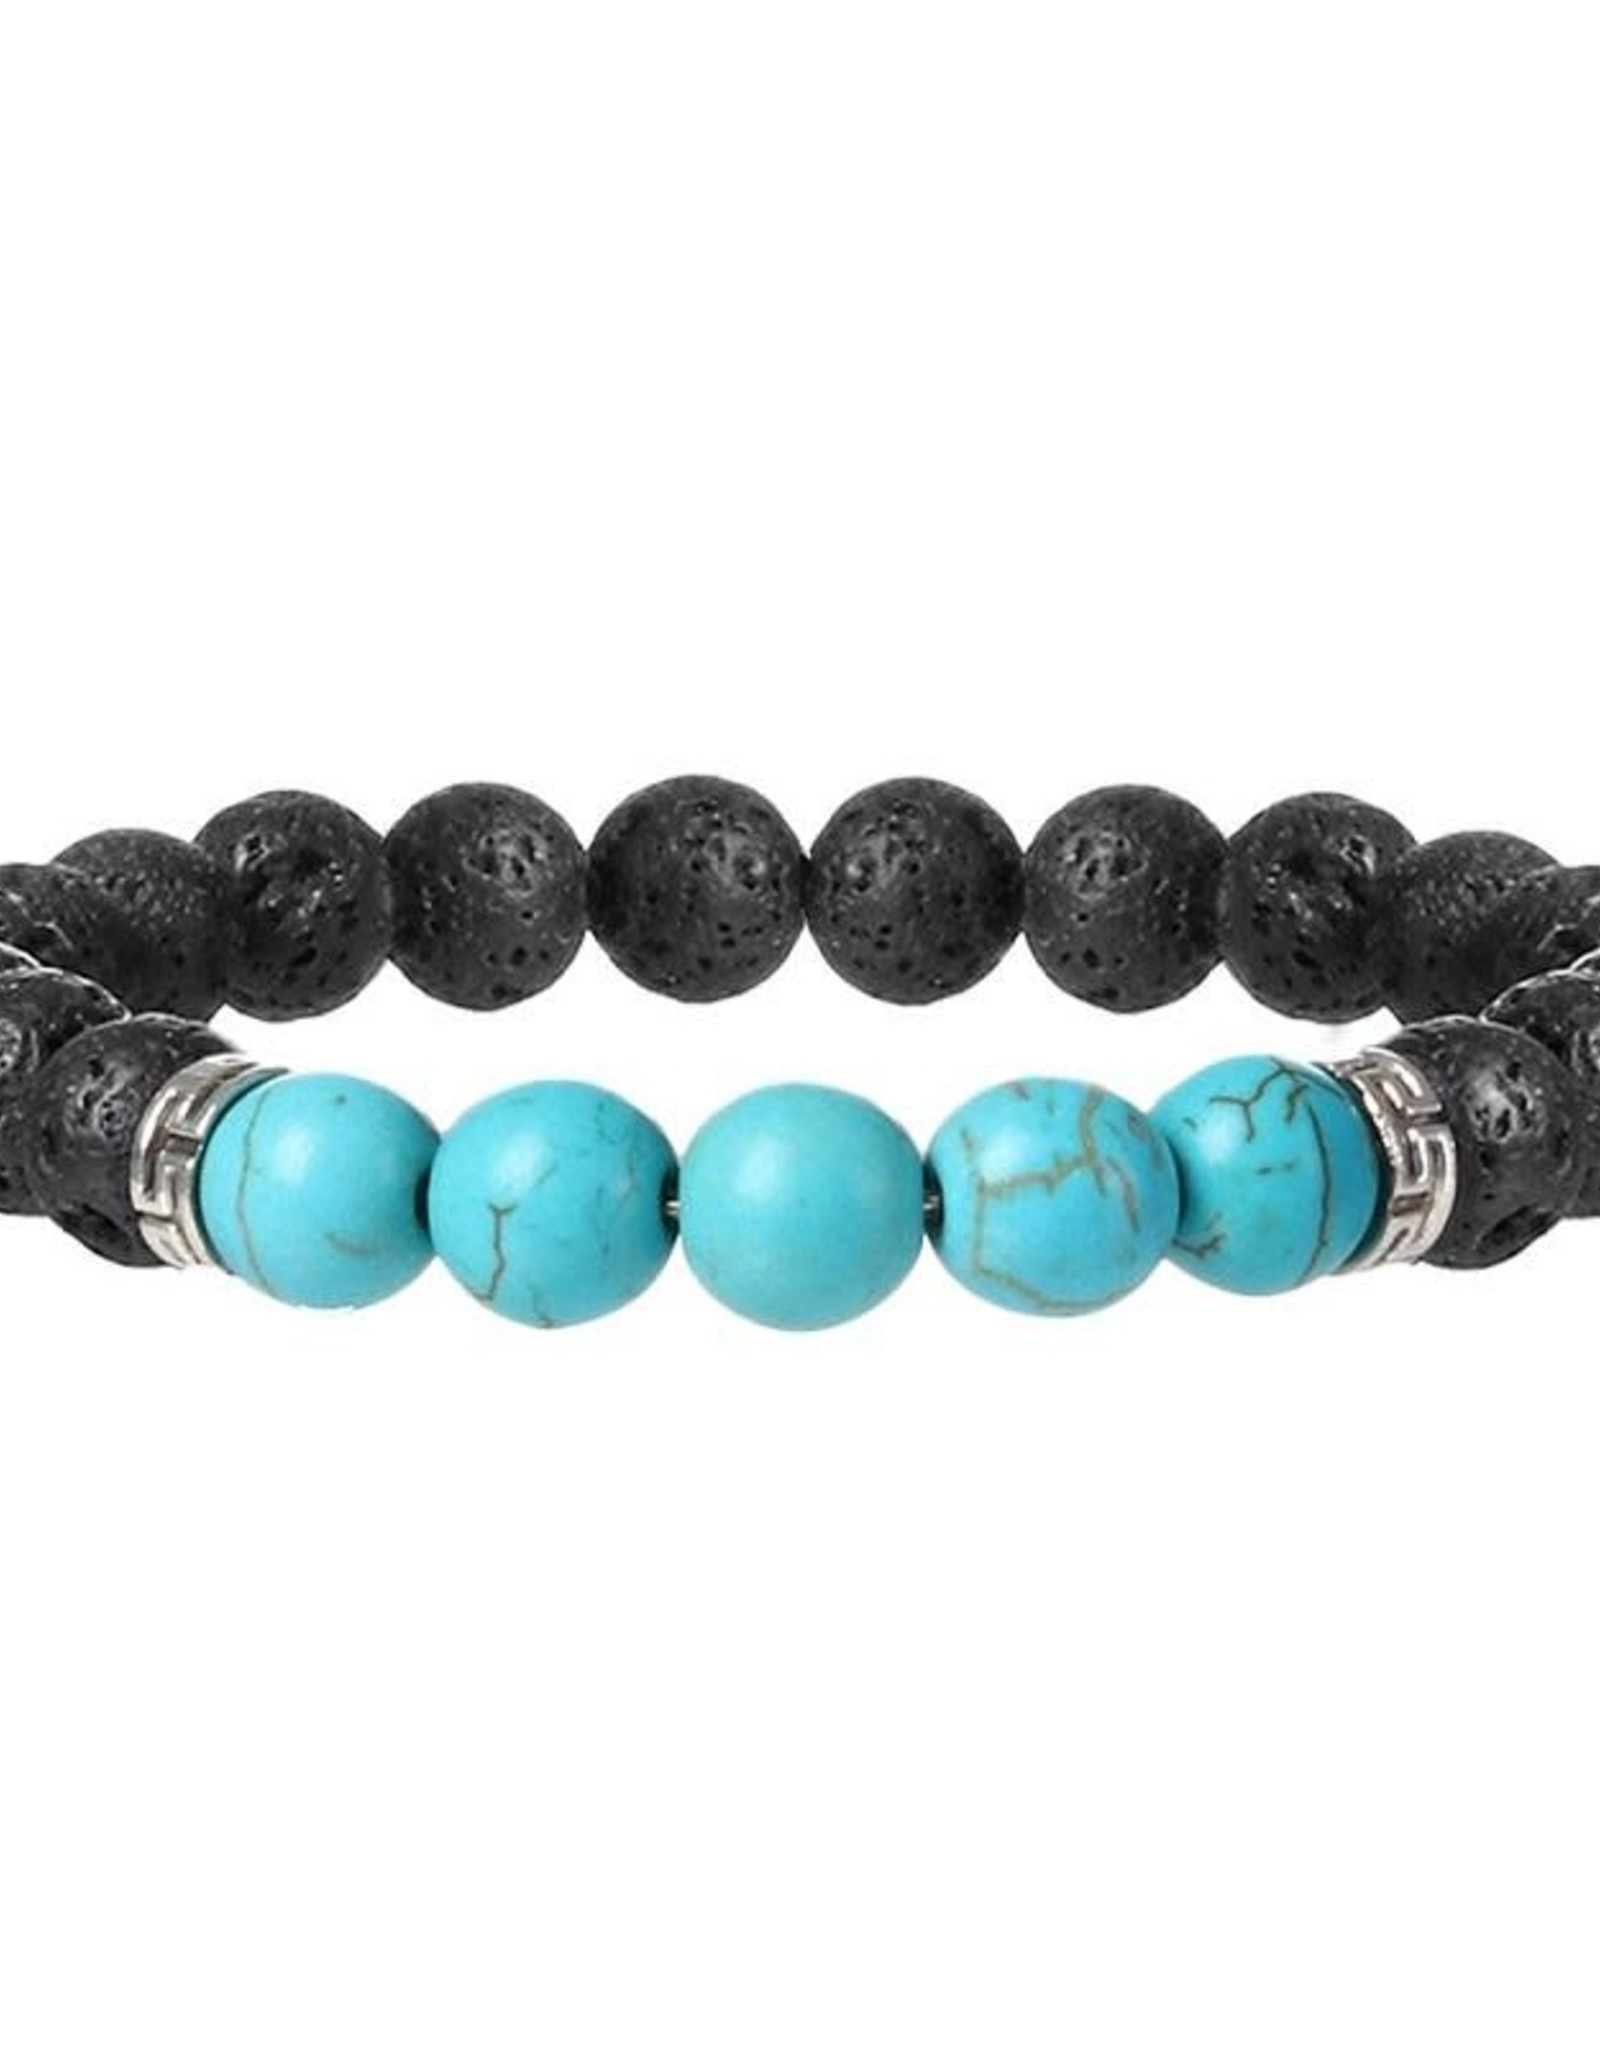 Supplied Chakra Bead with Volcanic Stones Bracelet